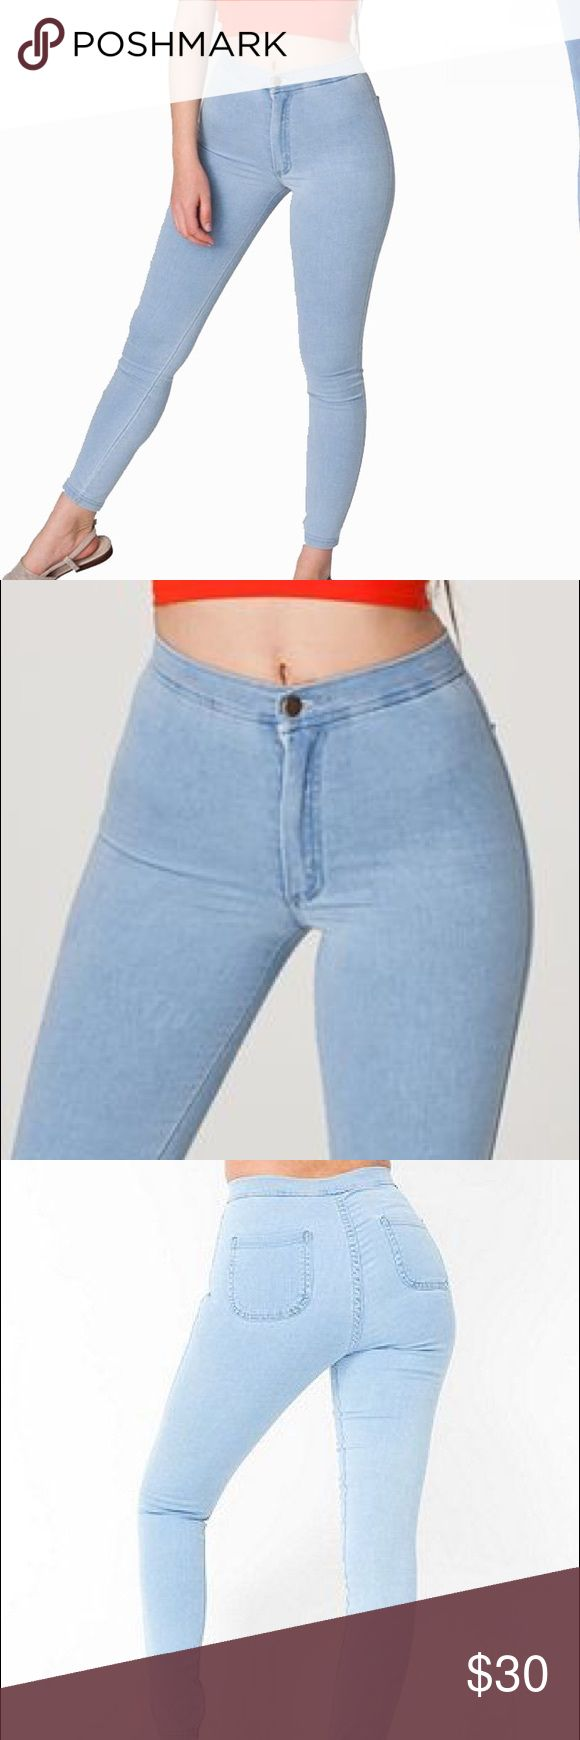 American Apparel Easy Jeans Excellent condition no flaws!  American Apparel Easy Jean in light blue!! Very high waisted.  Will fit a size 27/28 US womens American Apparel Jeans